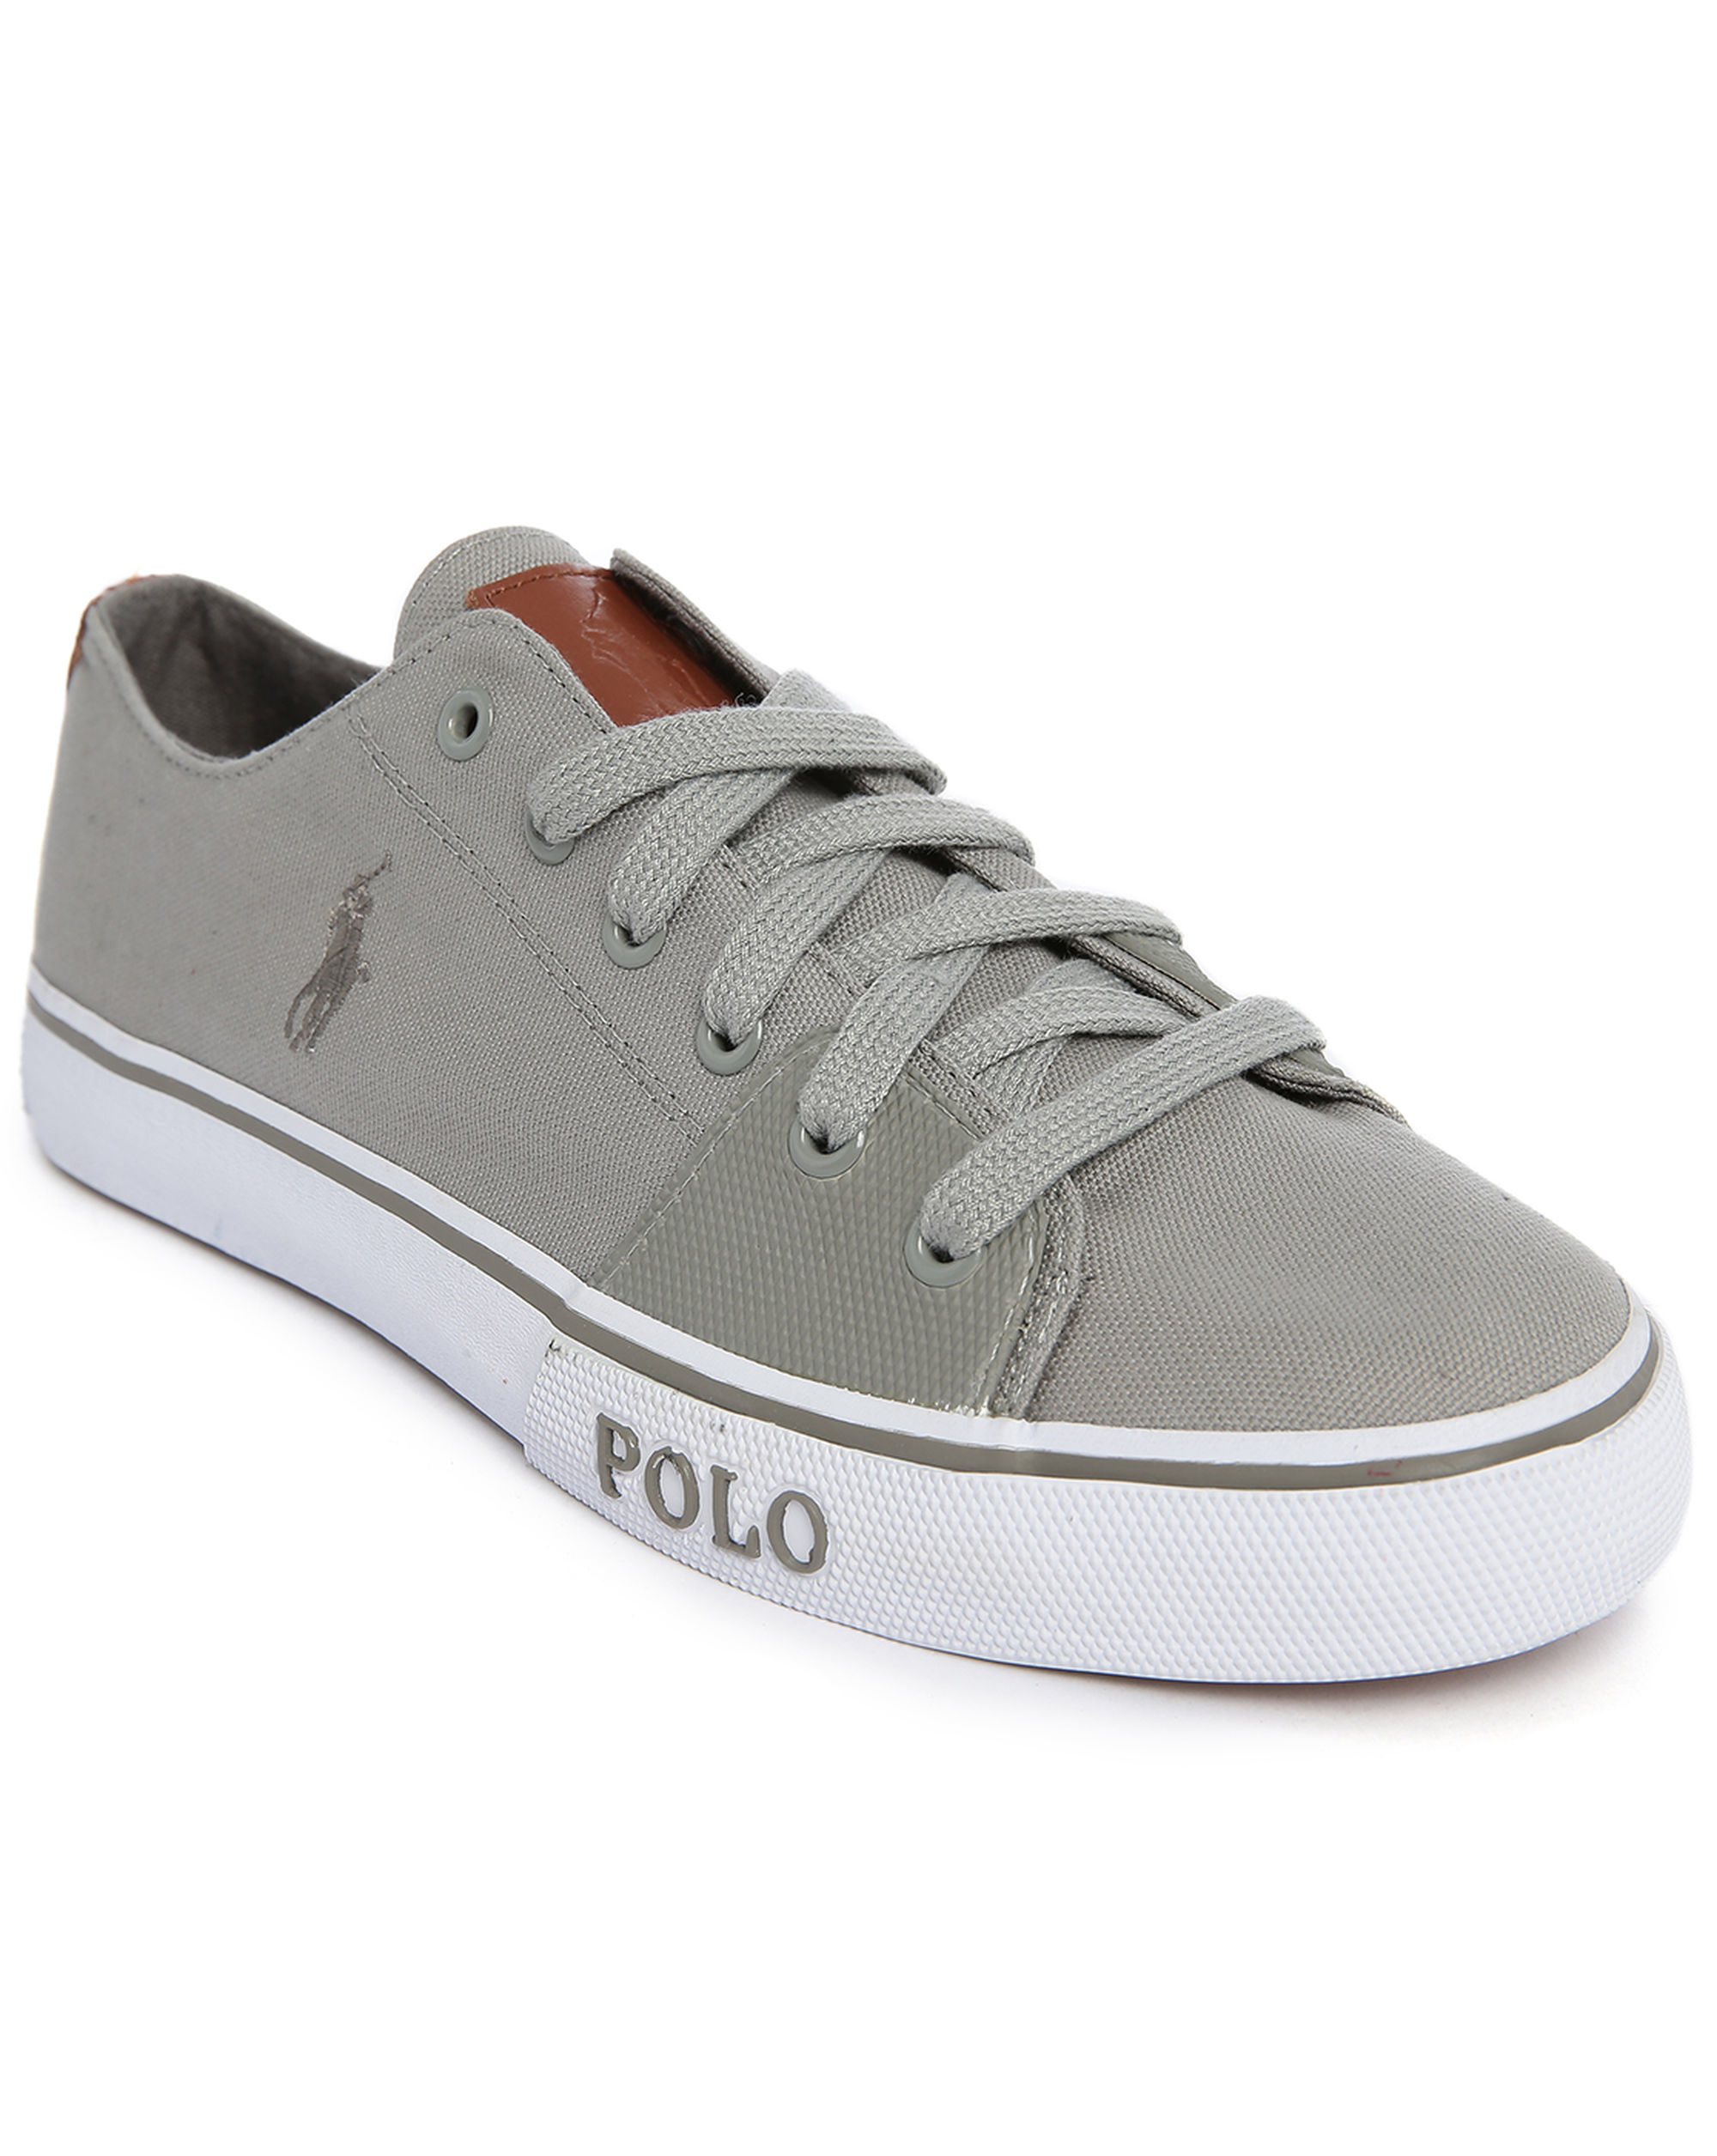 polo ralph cantor grey canvas sneakers in gray for